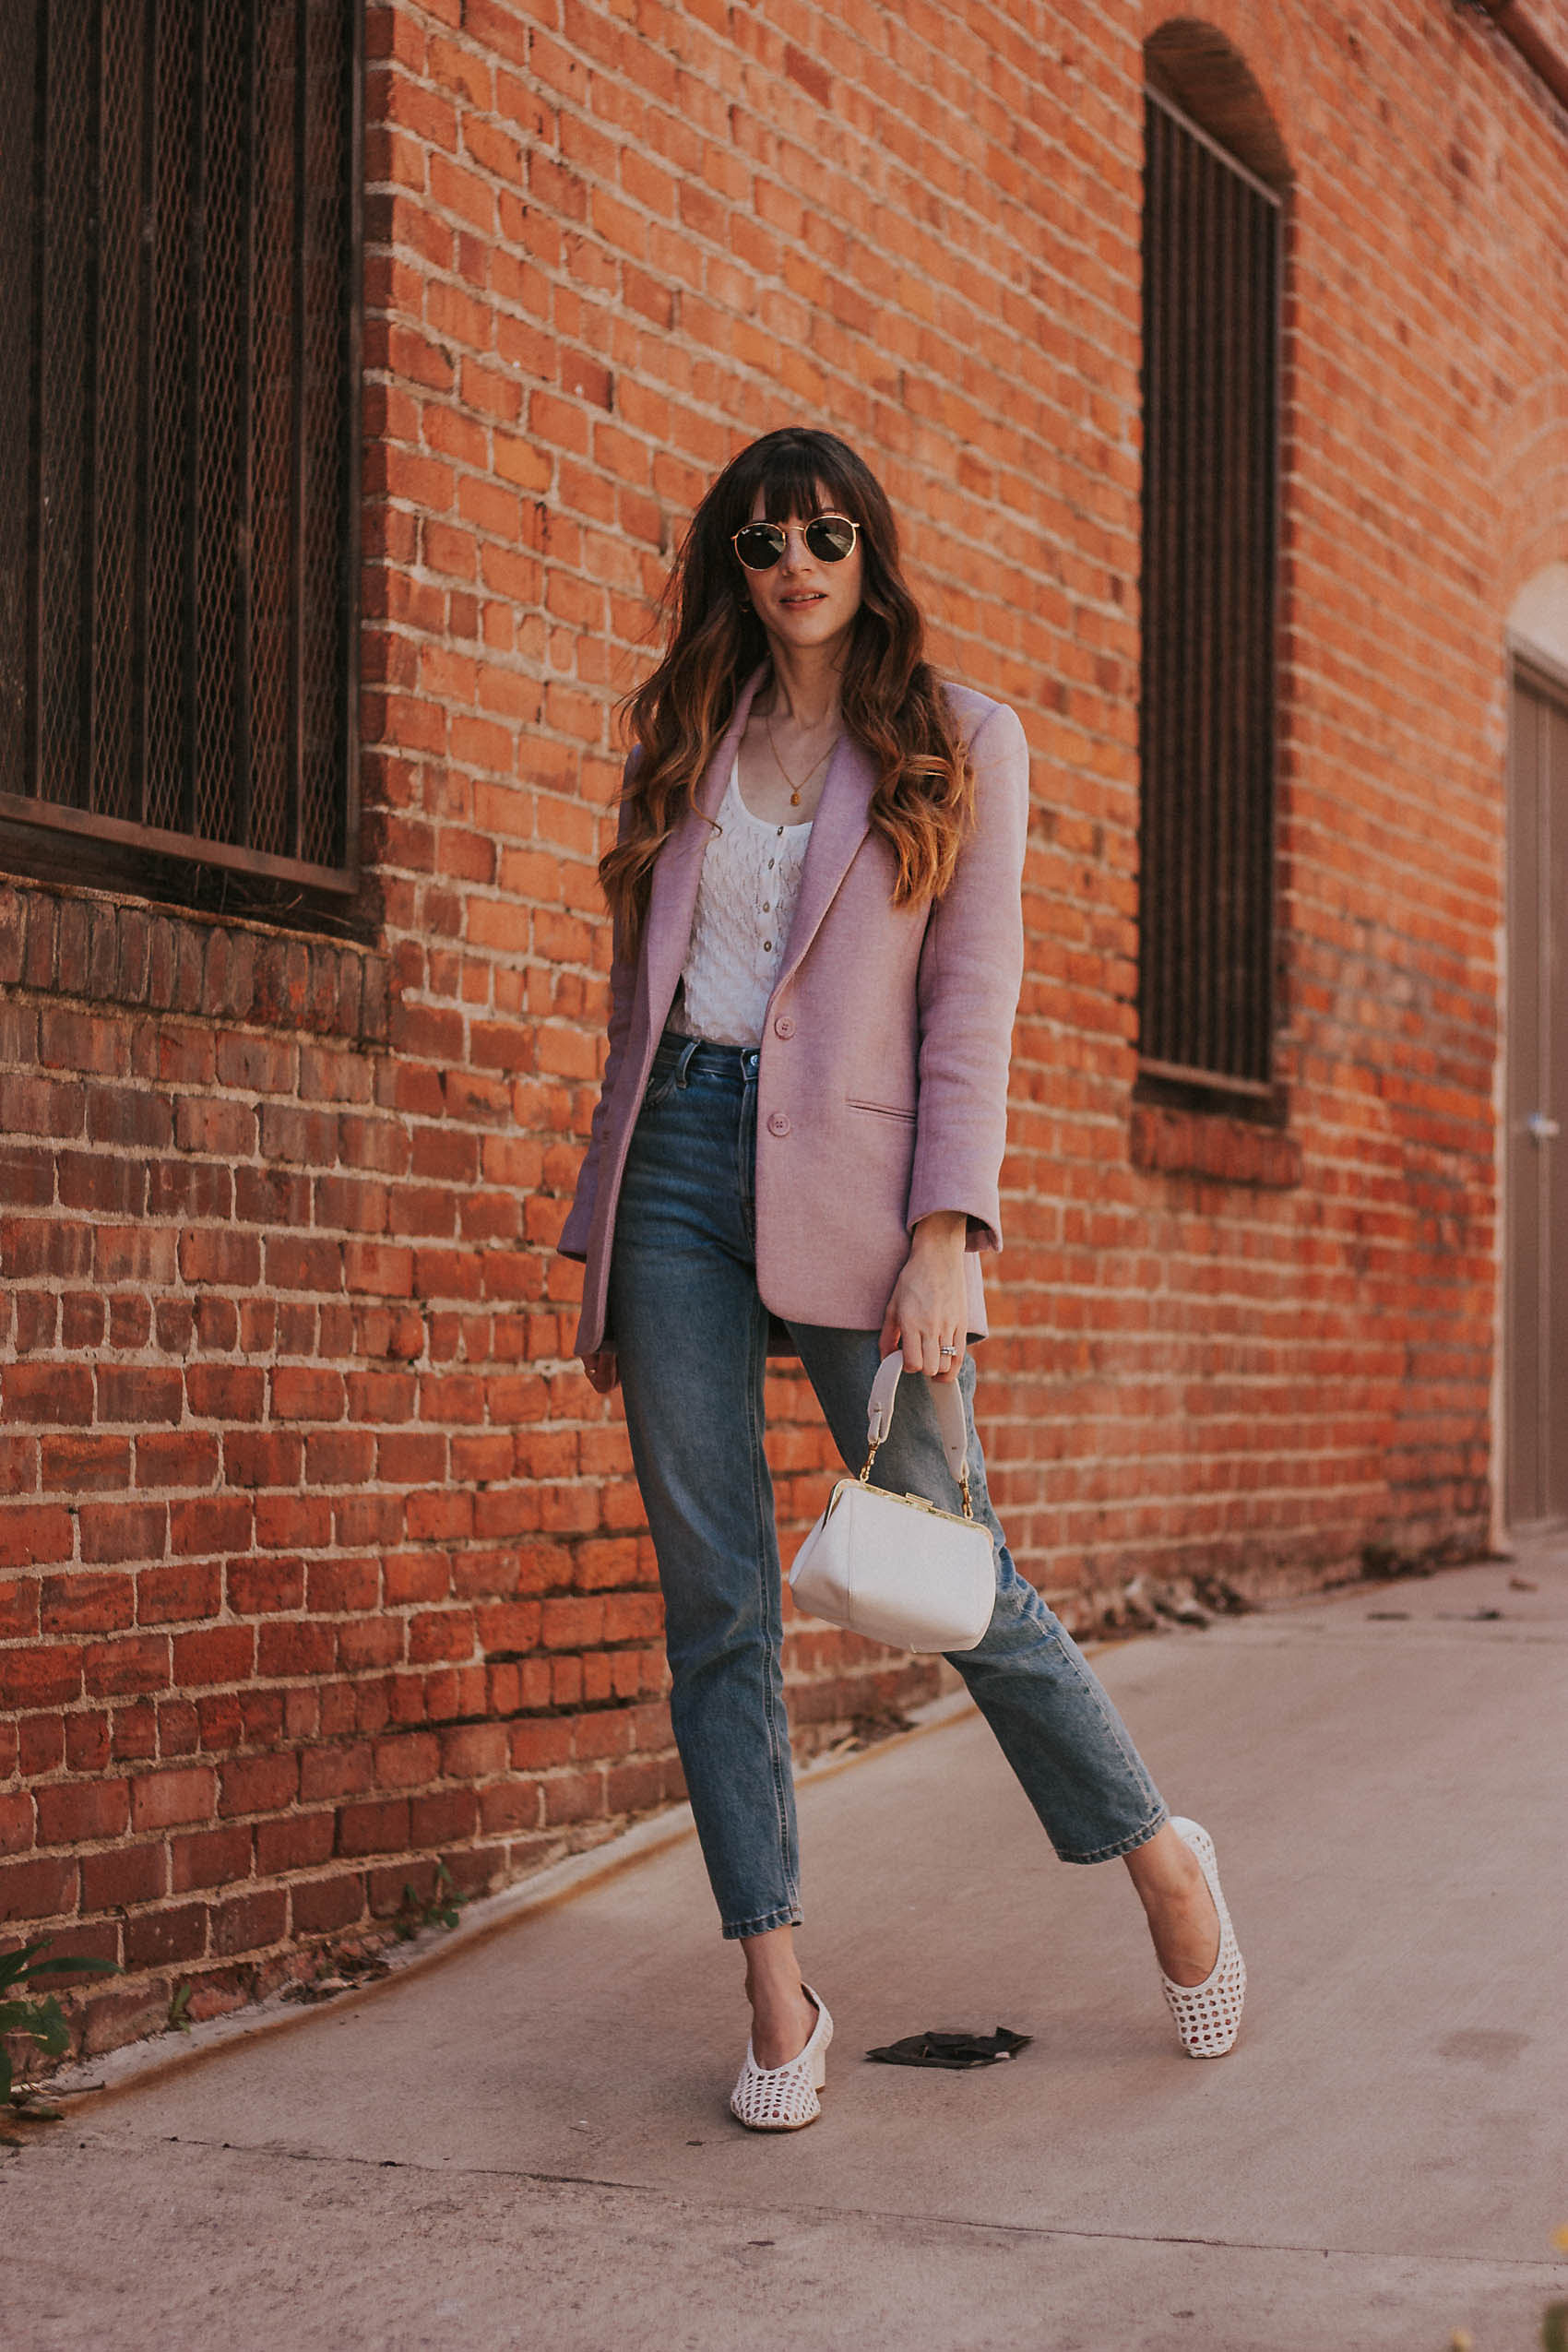 Rouje Blazer on Los Angeles fashion blogger Jeans and a Teacup